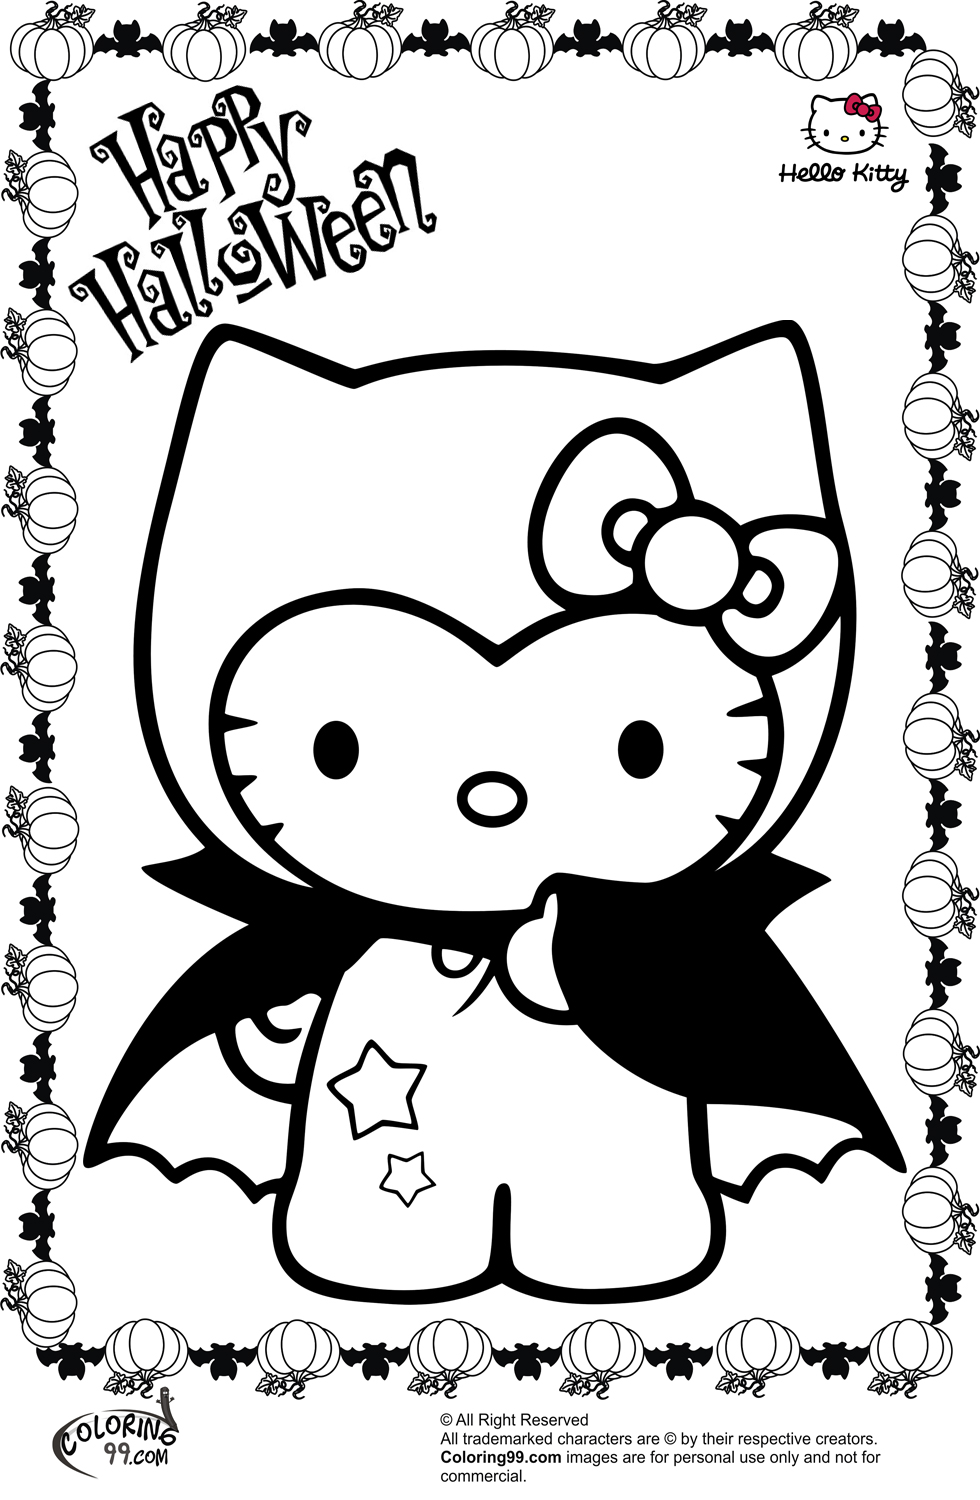 coloring sheets for halloween halloween printable coloring pages minnesota miranda halloween sheets coloring for